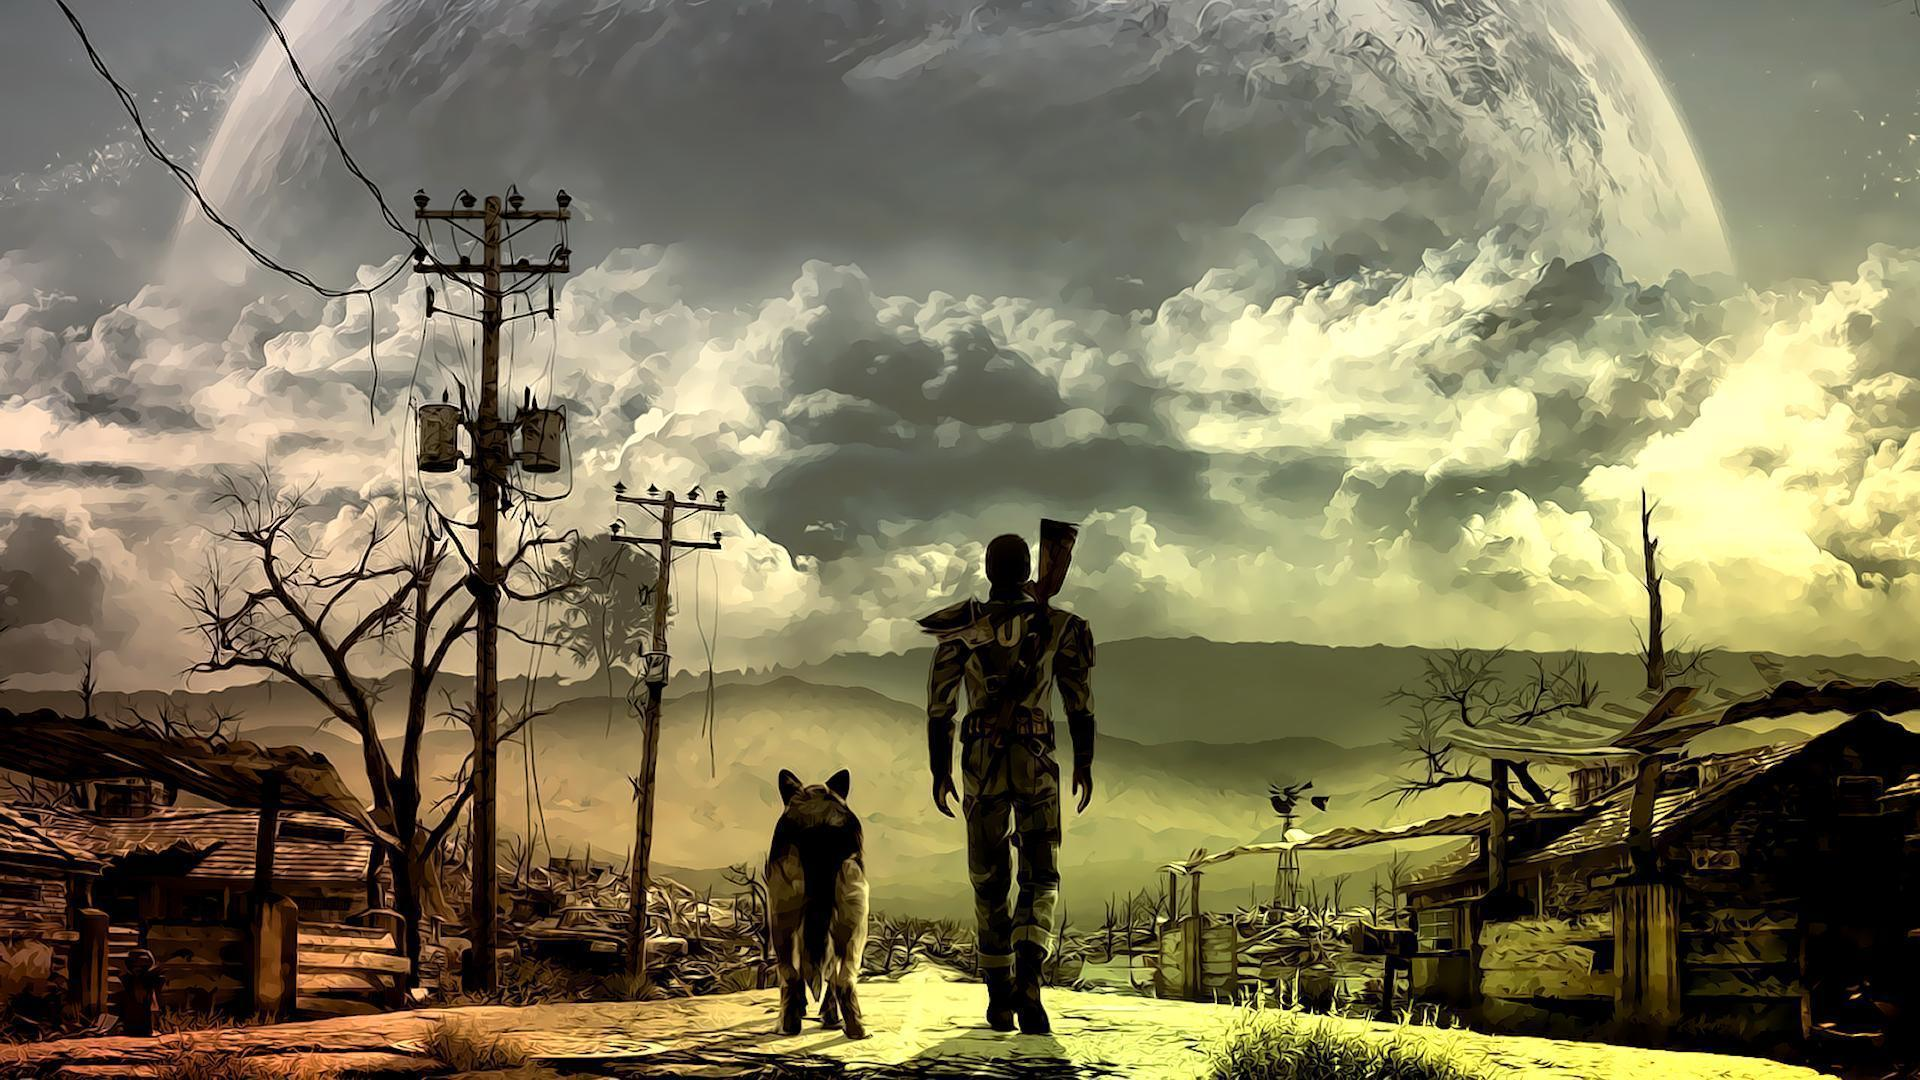 Fallout Wallpapers Collection